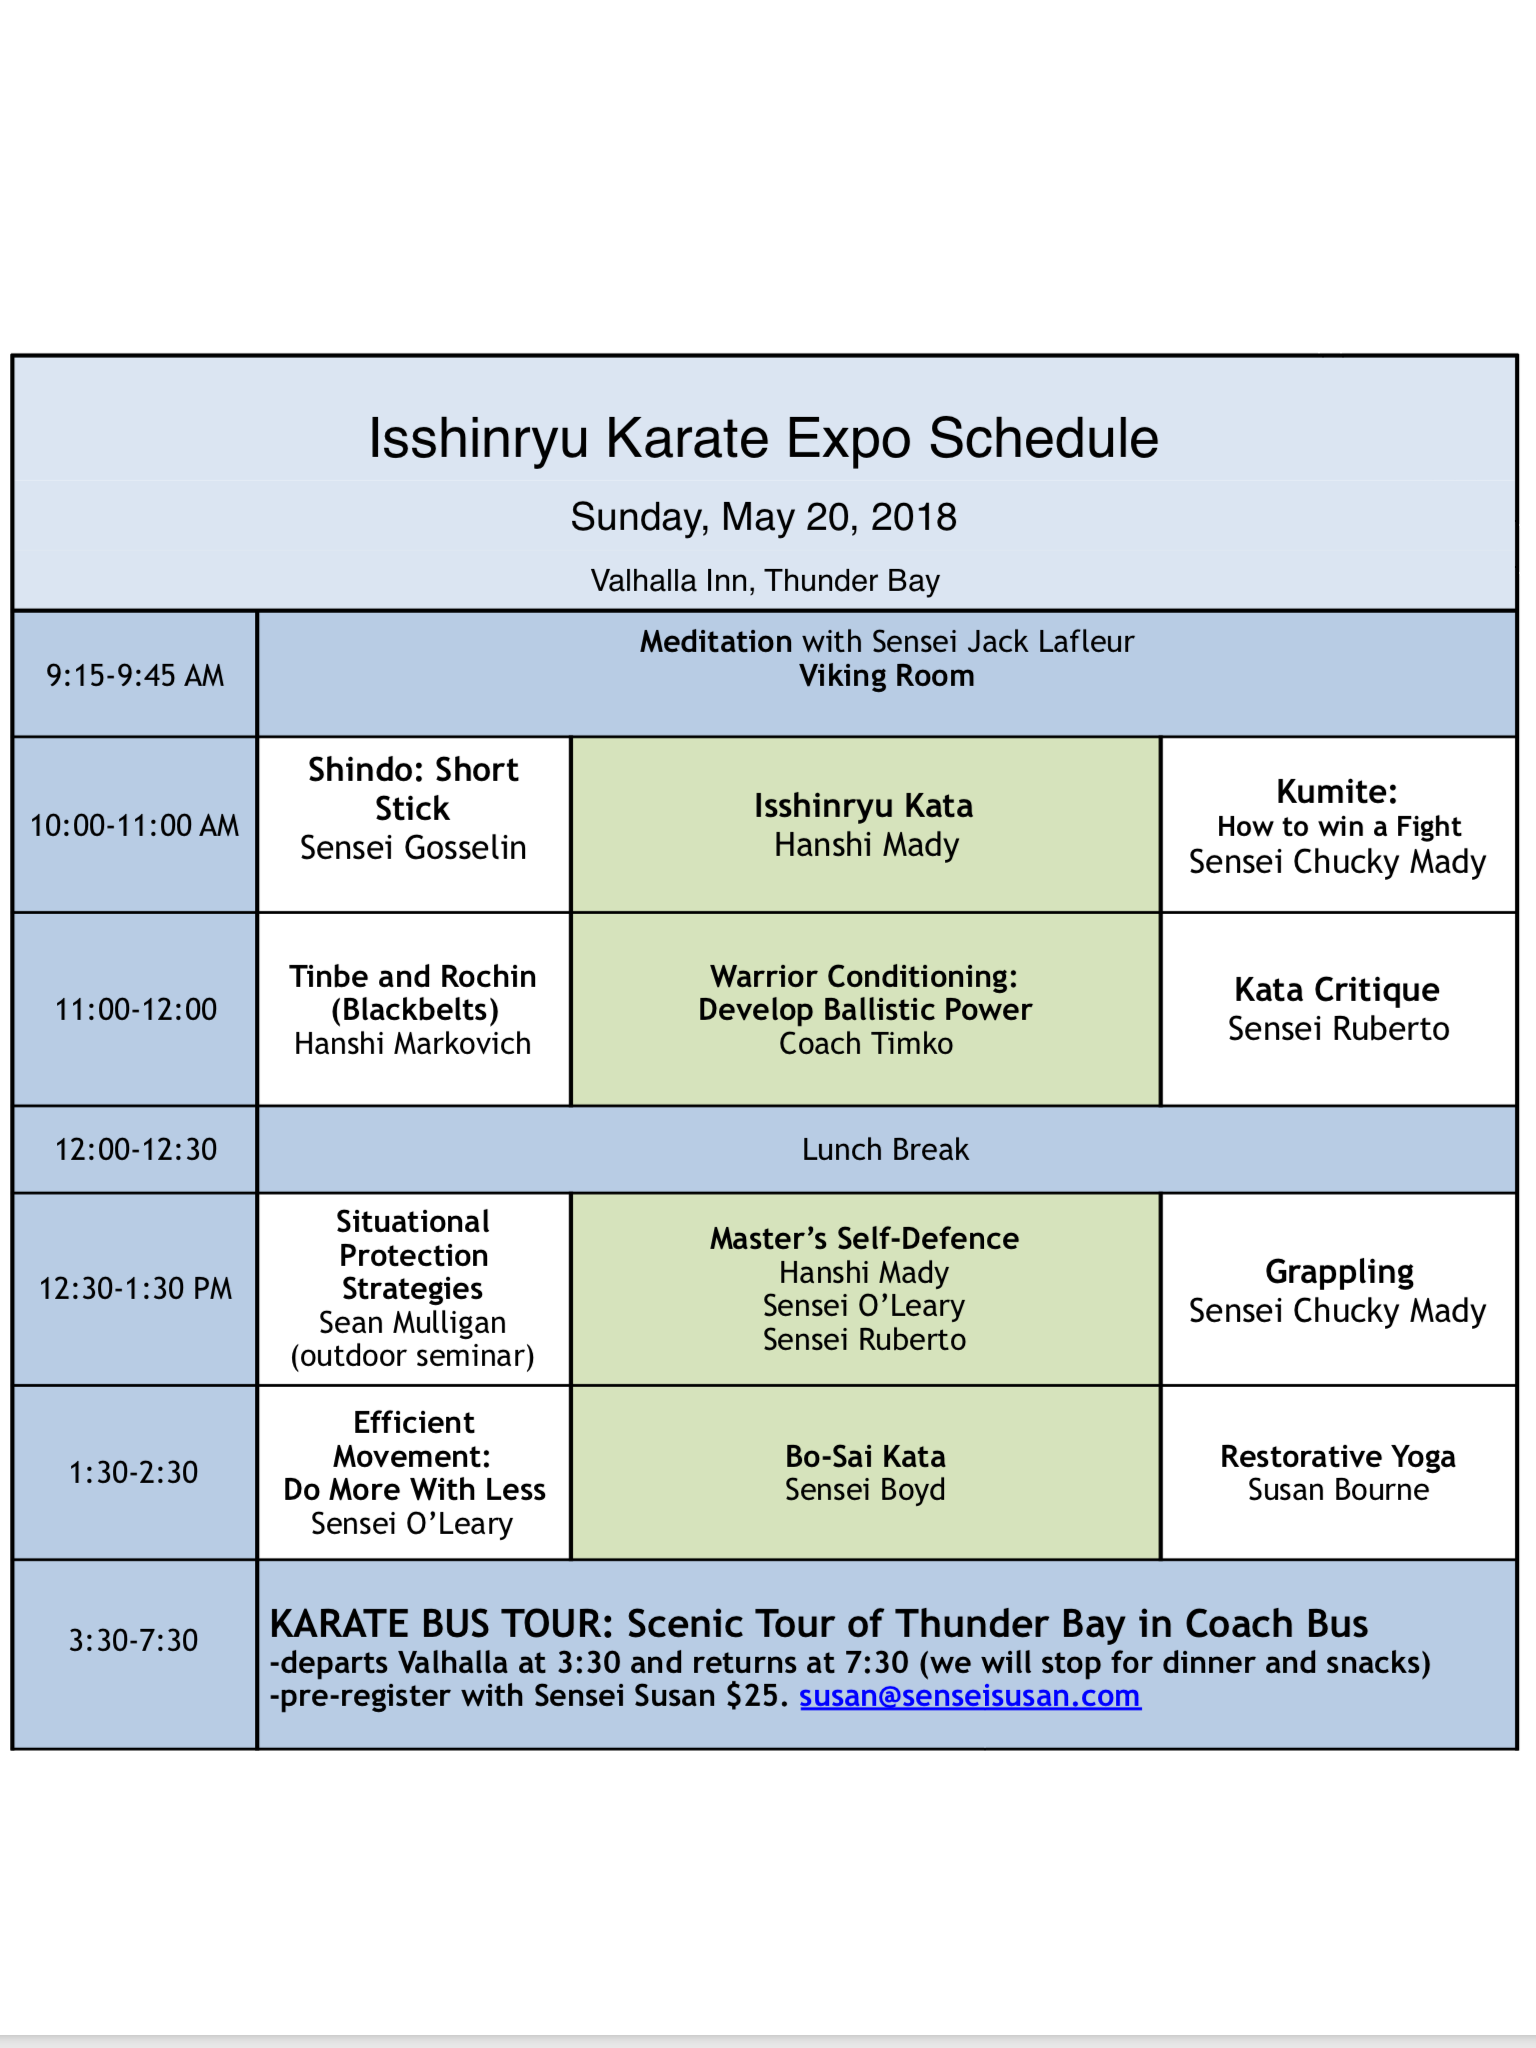 Sunday, May 20 Schedule